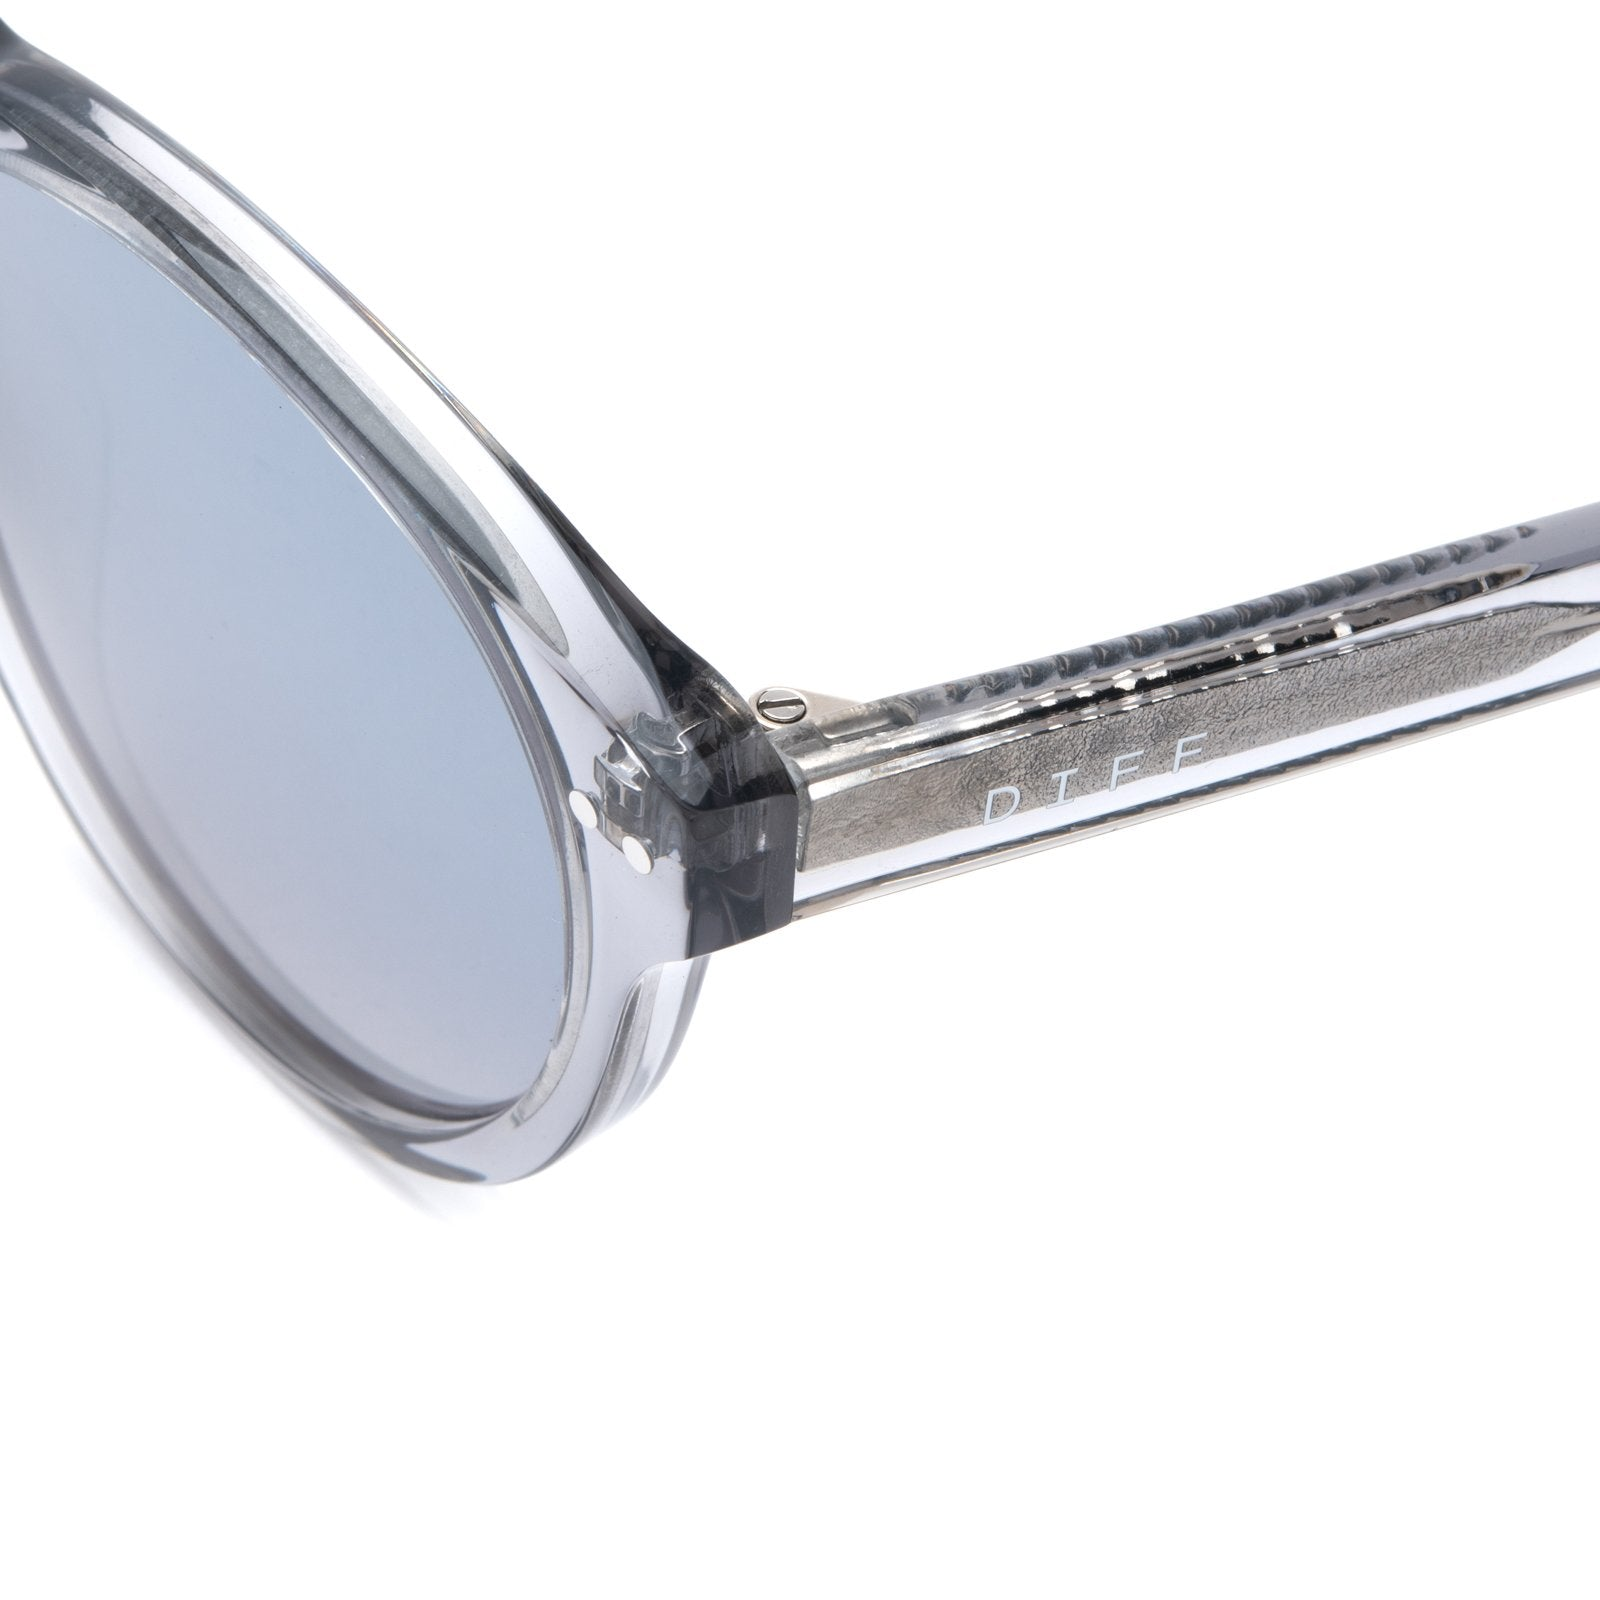 Cody sunglasses with smoke crystal frames and grey mirror lens angle shot